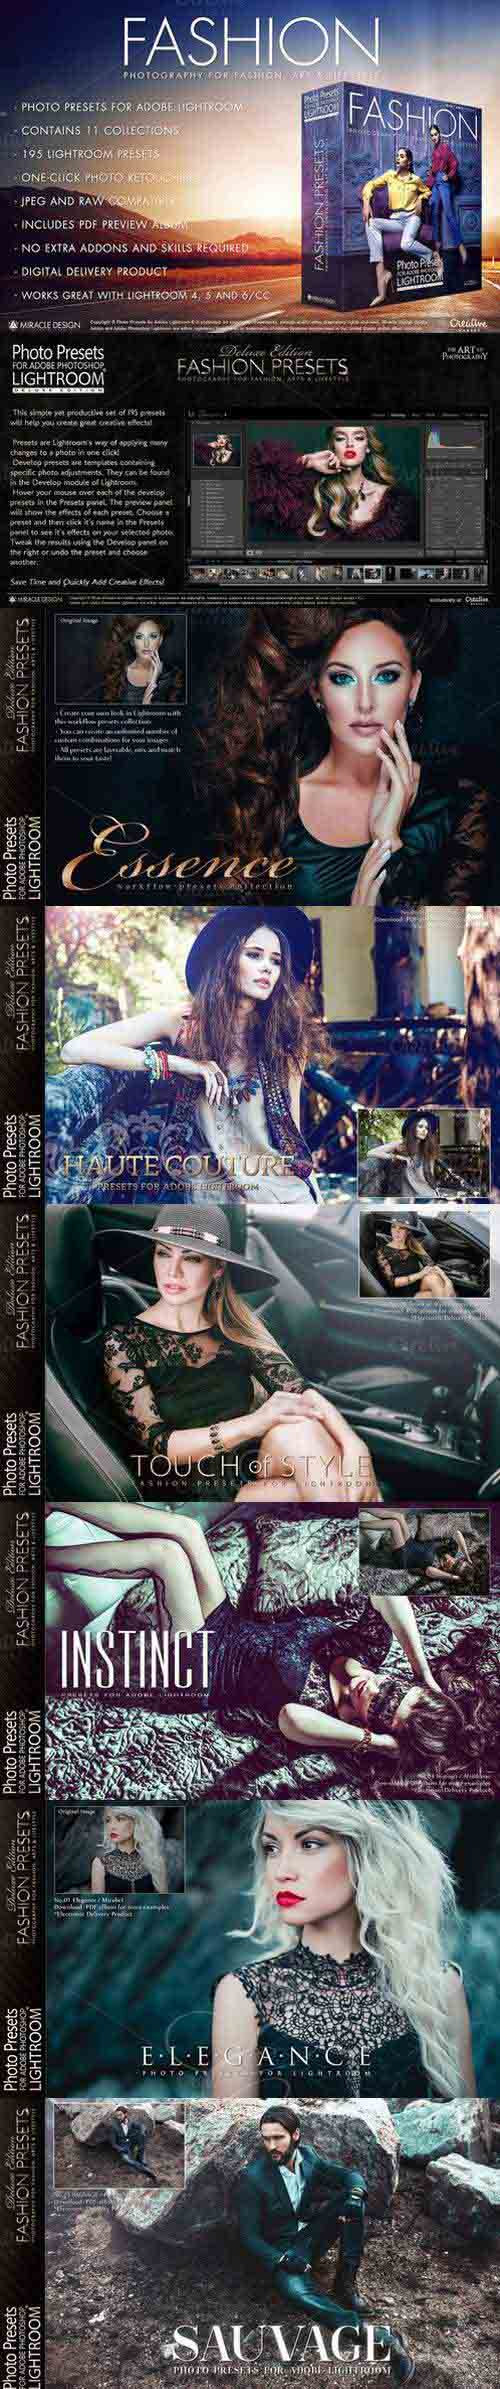 Presets for Lightroom / Fashion 928146